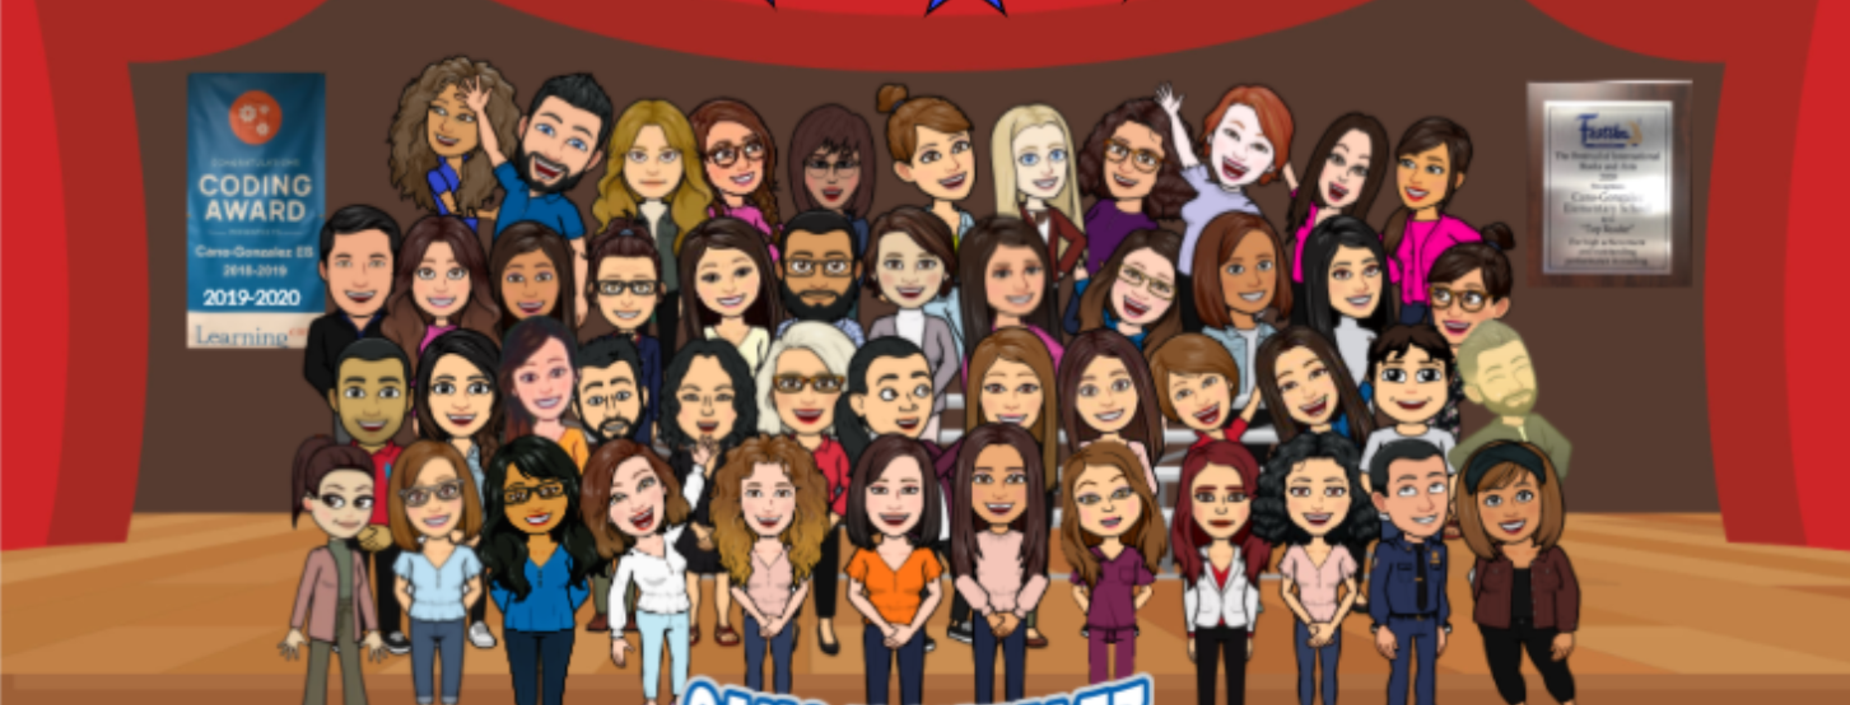 CanoGonzalez Bitmoji Staff Photo